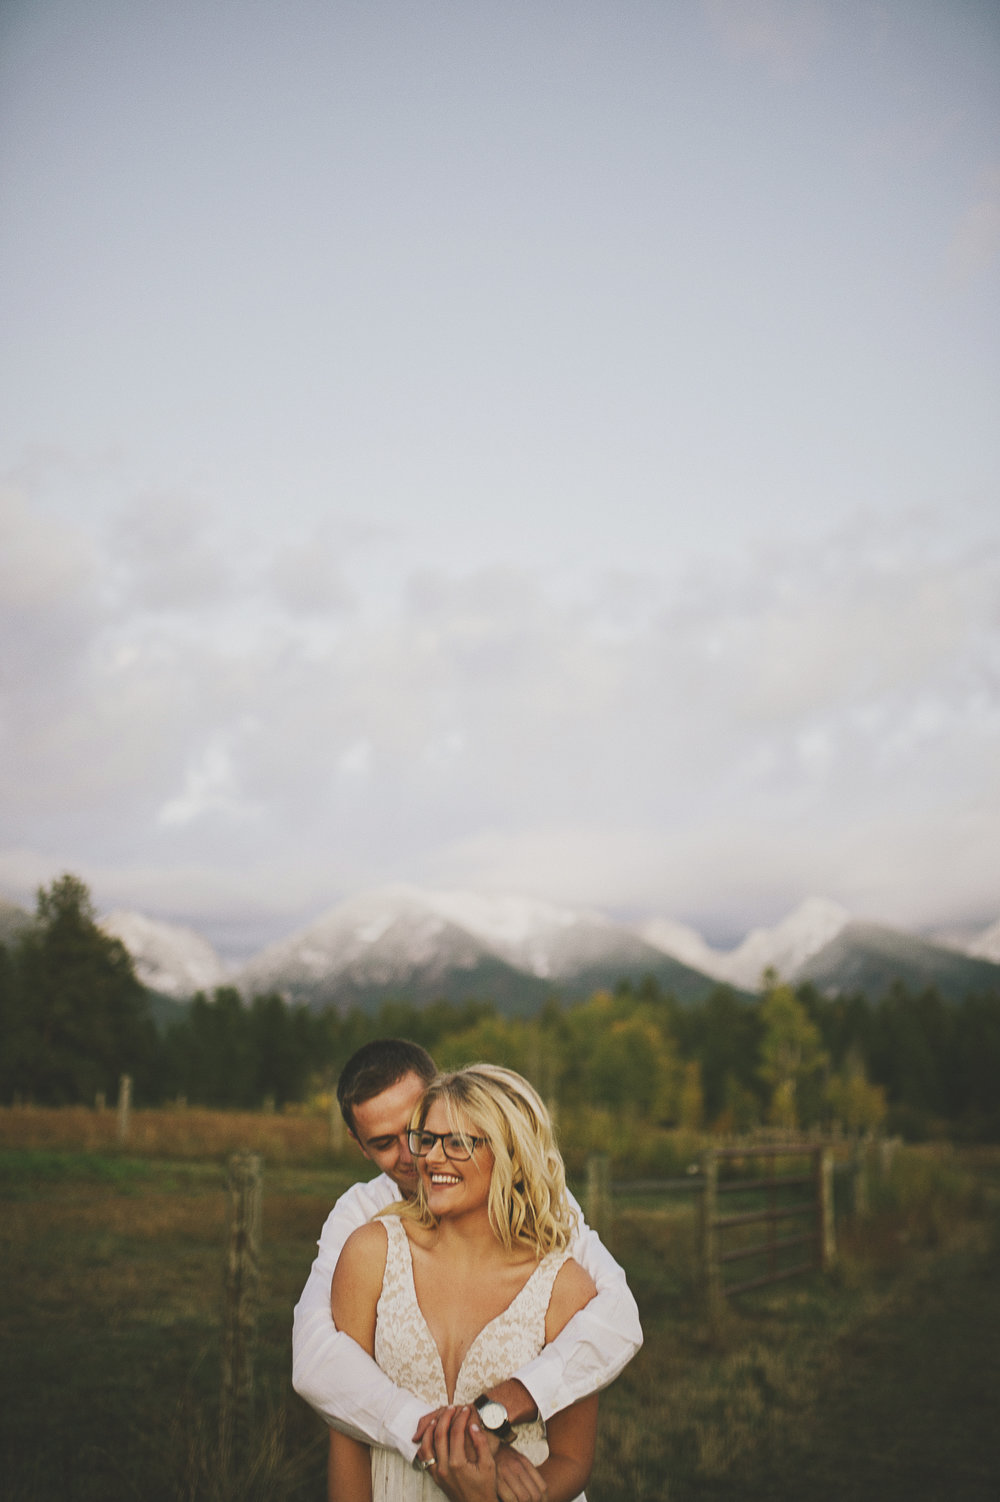 Polson Engagement Session_Katie White and Tommy Tosic_Sky Ridge Ranch Engagement_Montana Wedding Photographer_Kelsey Lane Photography-7640 copy.jpg